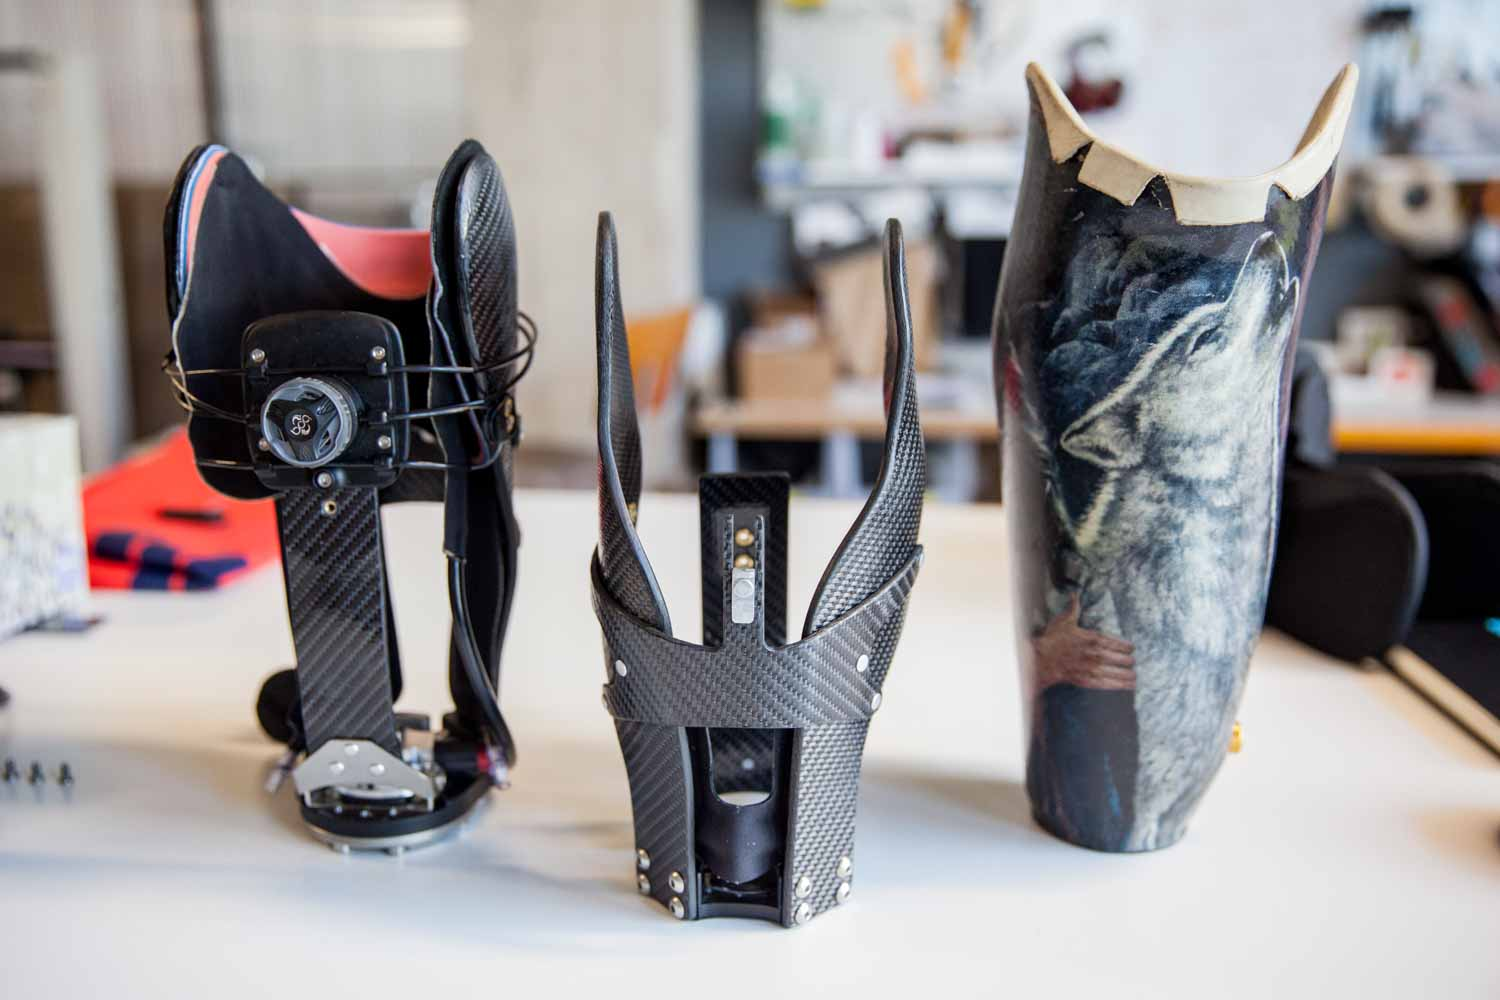 Lim innovations modular prosthetic device